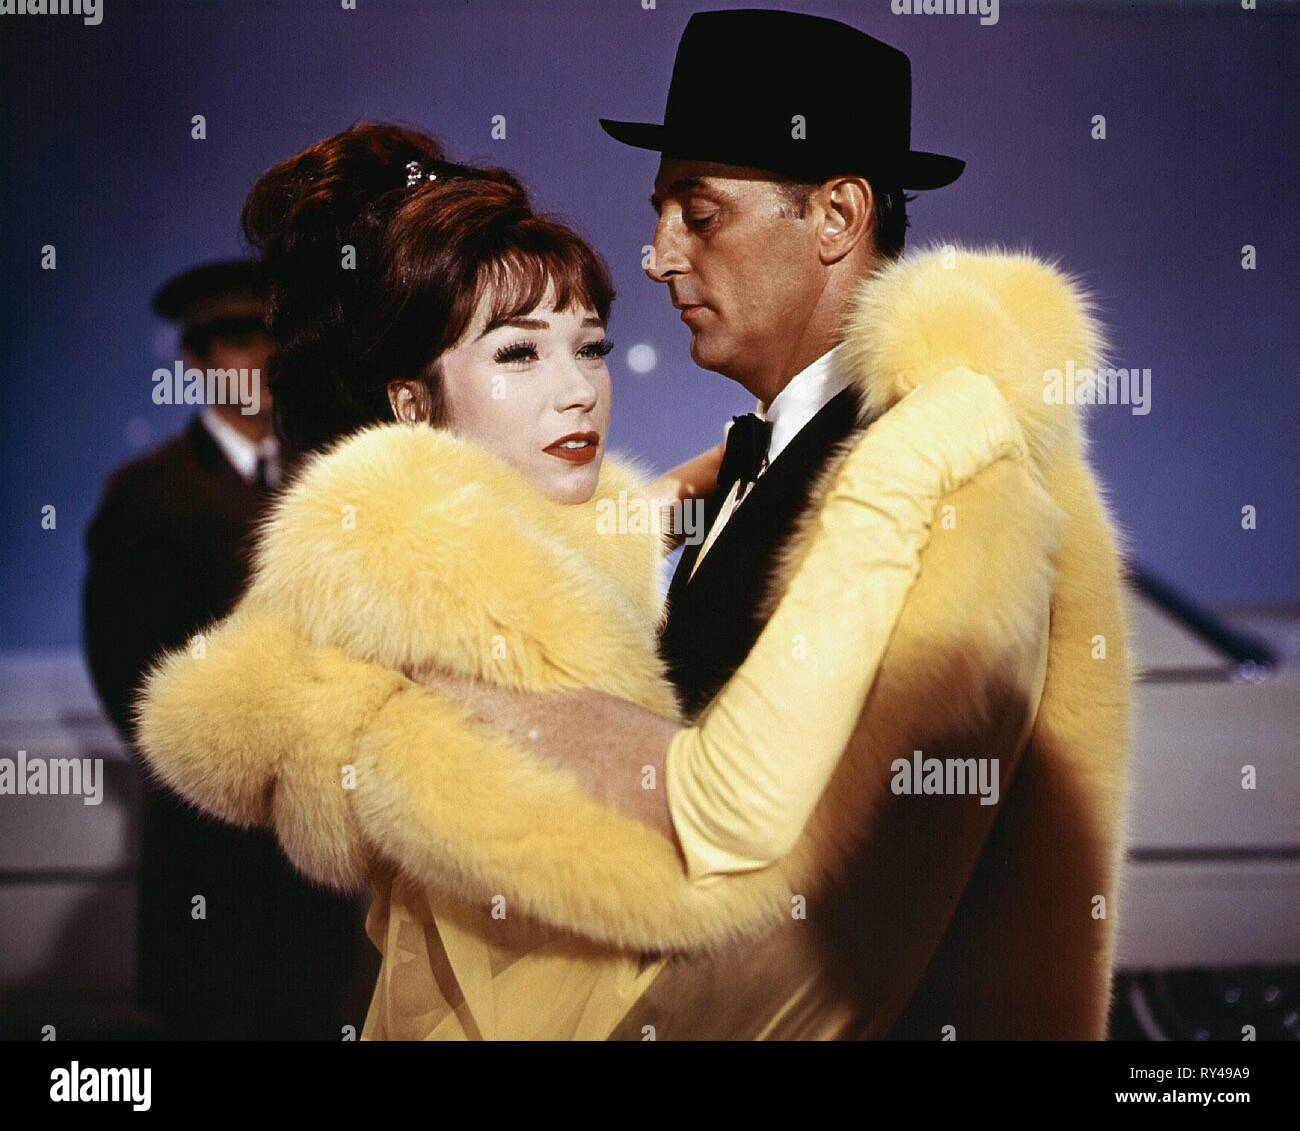 SHIRLEY MACLAINE,ROBERT MITCHUM, WHAT A WAY TO GO, 1964 - Stock Image